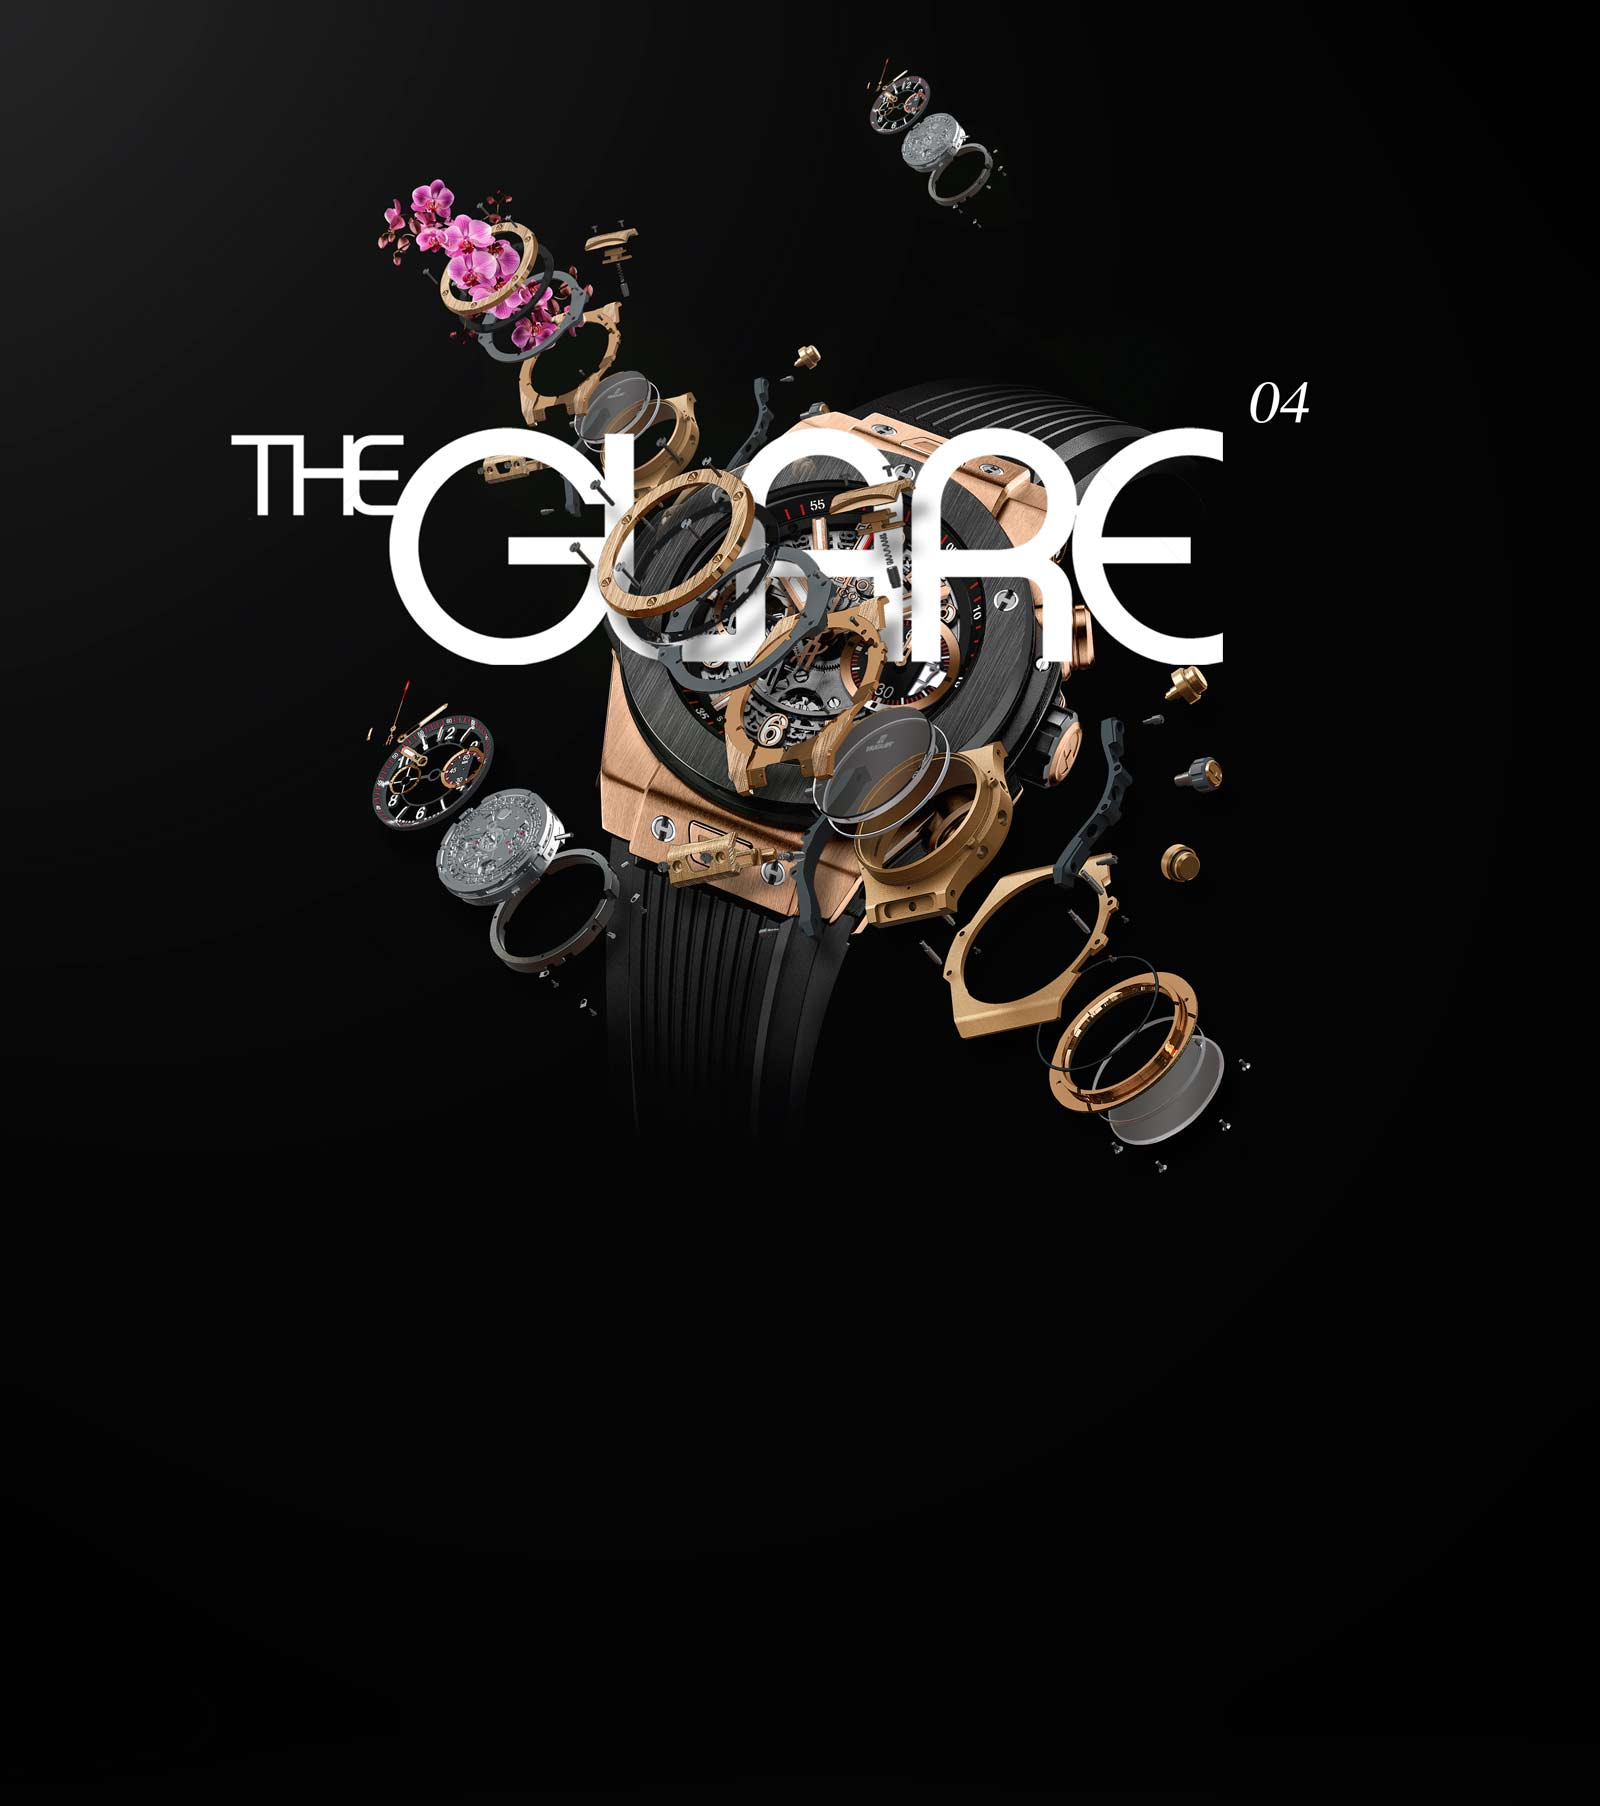 The Glare - Fashion and Lifestyle Online Magazine